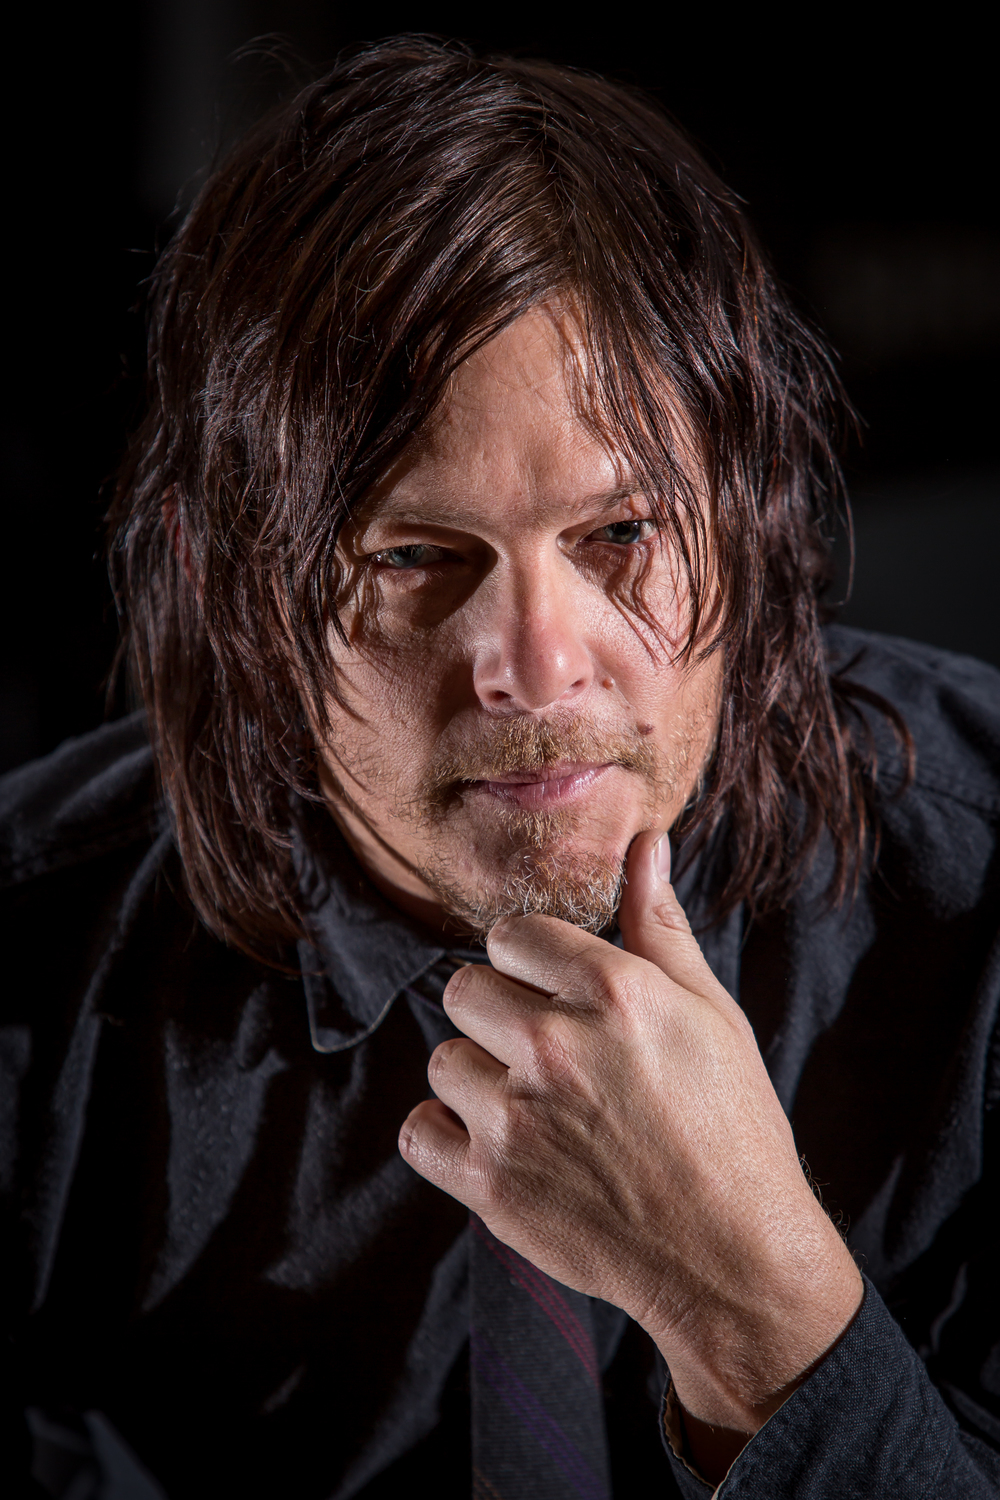 Norman Reedus of The Walking Dead